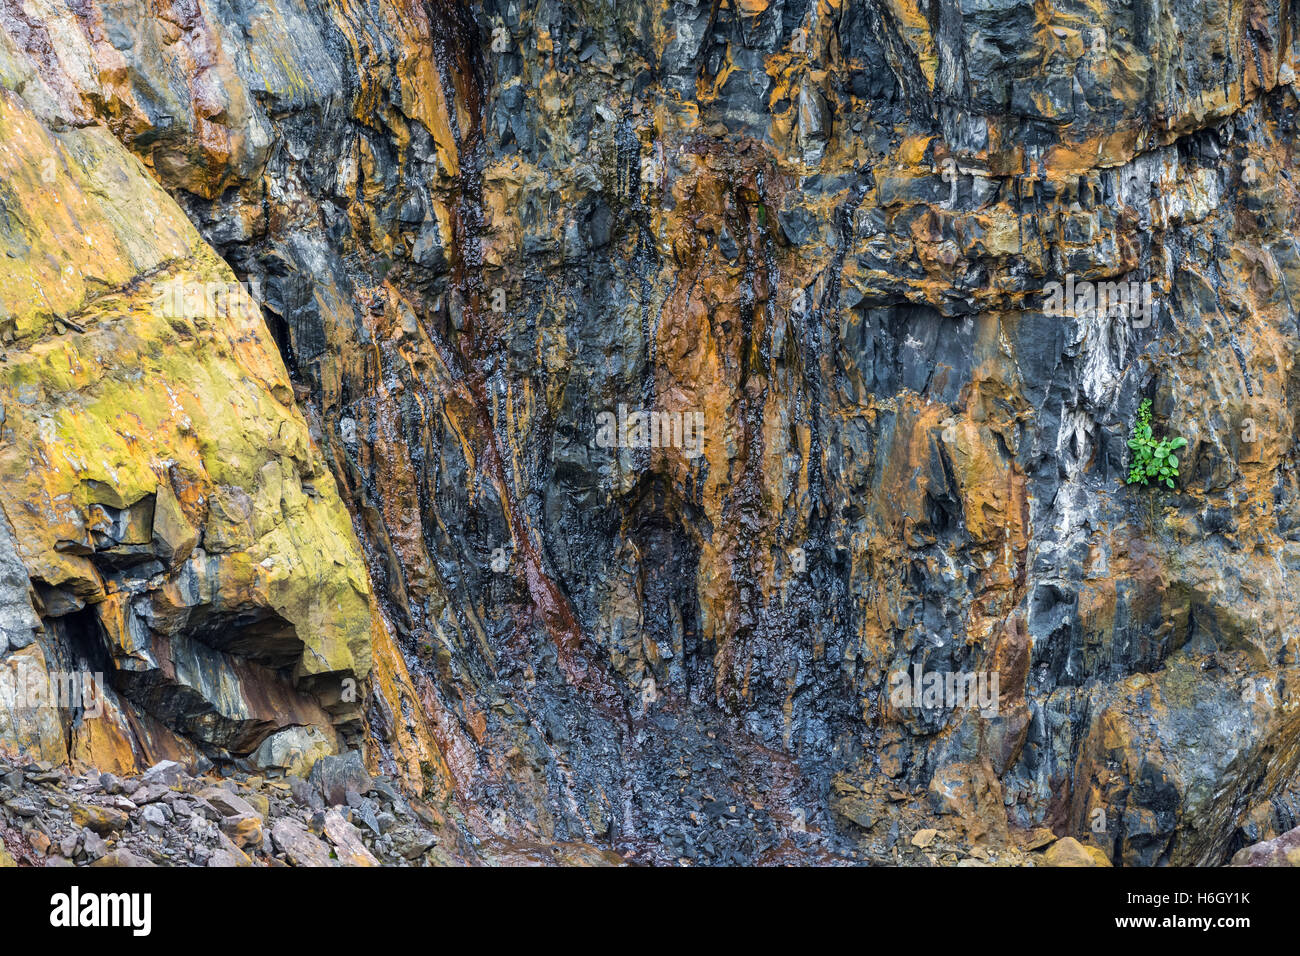 Dark colored crude oil oozing out of rocks in a open pit tar sand mine. Ecuador, South America. - Stock Image